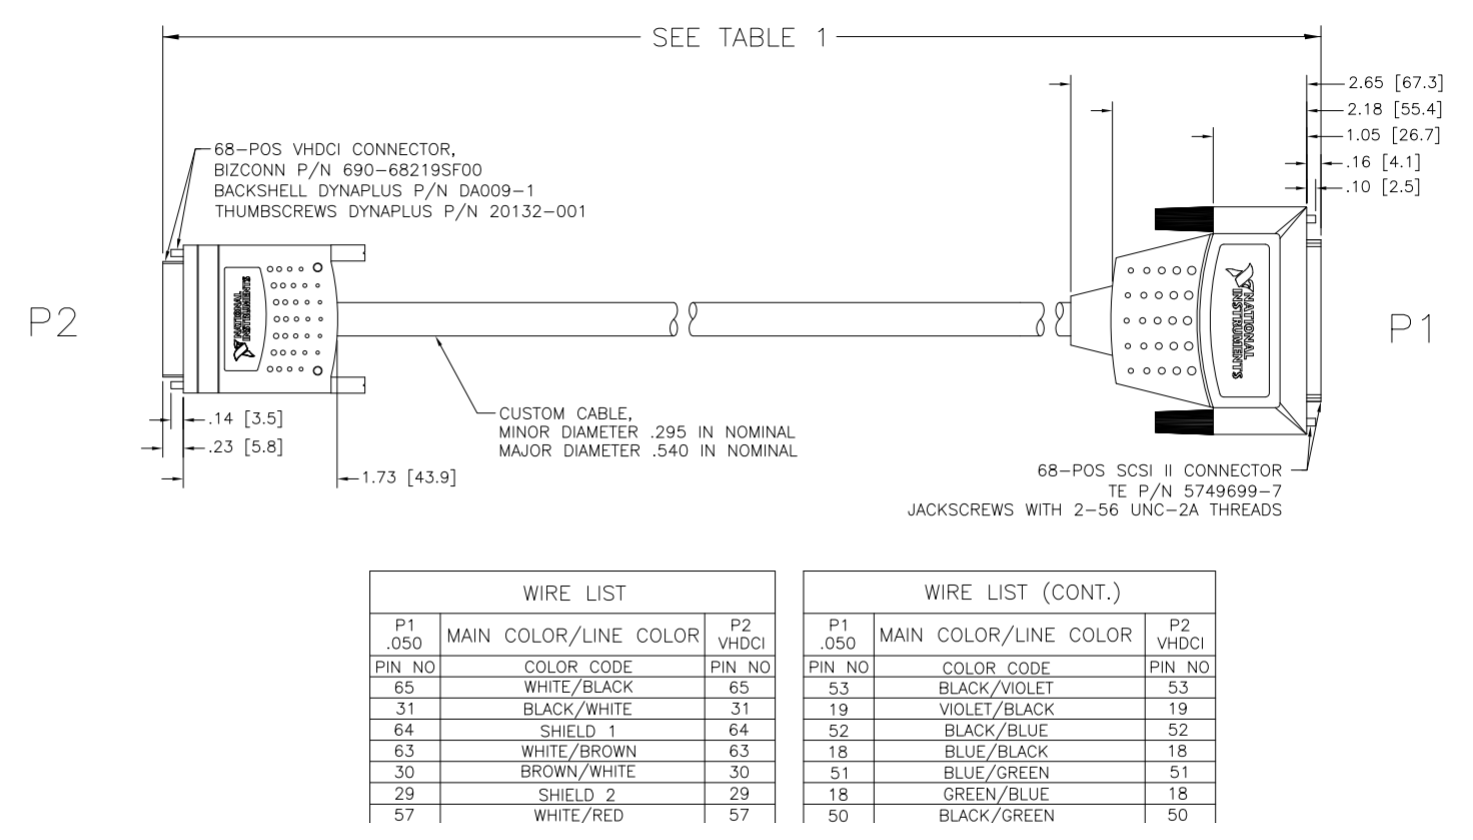 Scsi To Rj45 Wiring Diagram Completed Diagrams Schematic Simple Schema Pinout